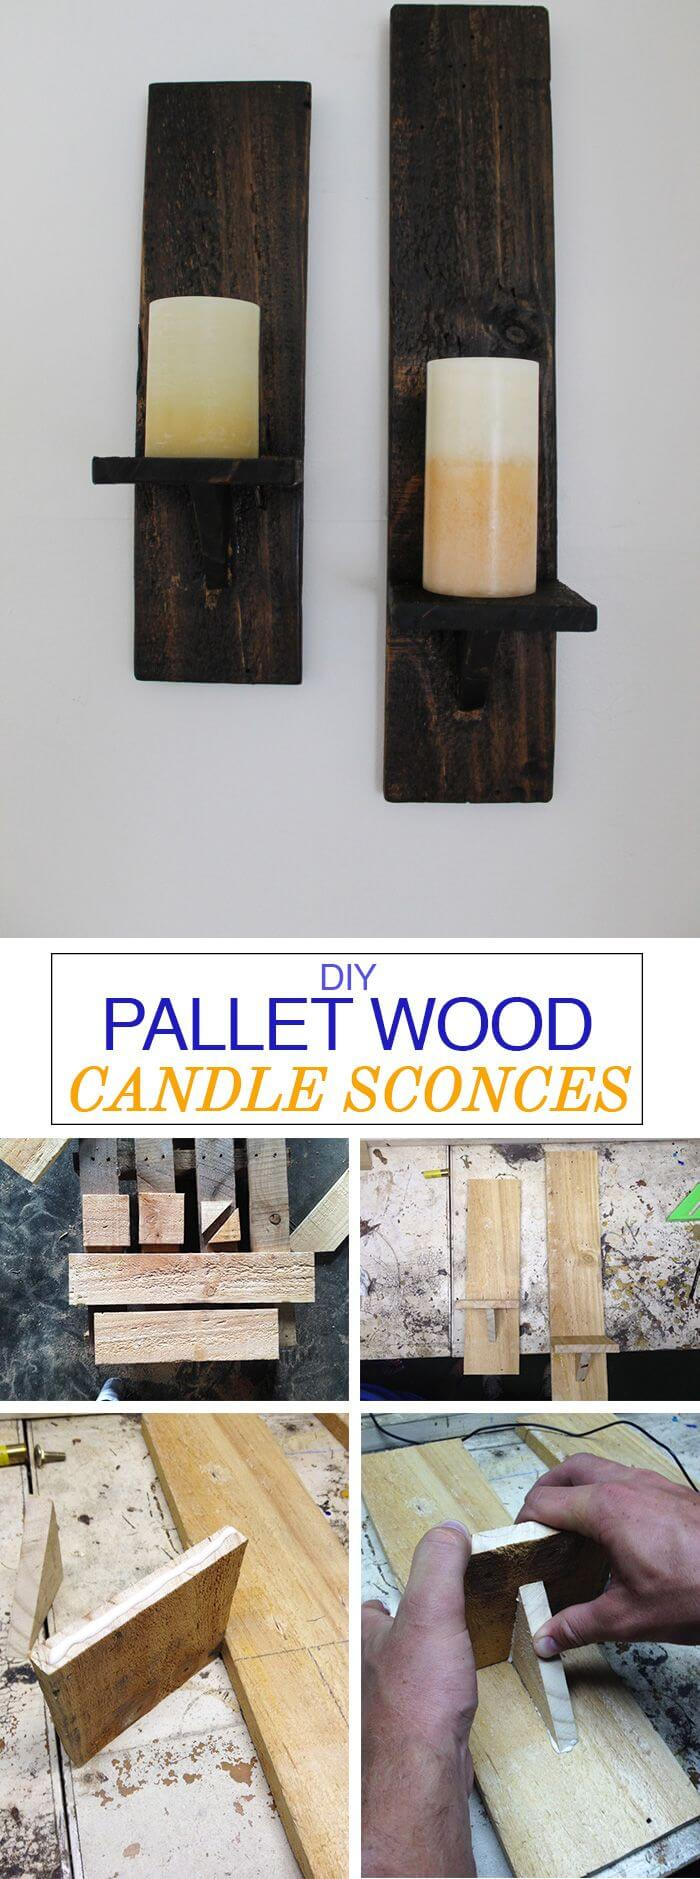 32 Best Diy Wood Craft Projects Ideas And Designs For 2018